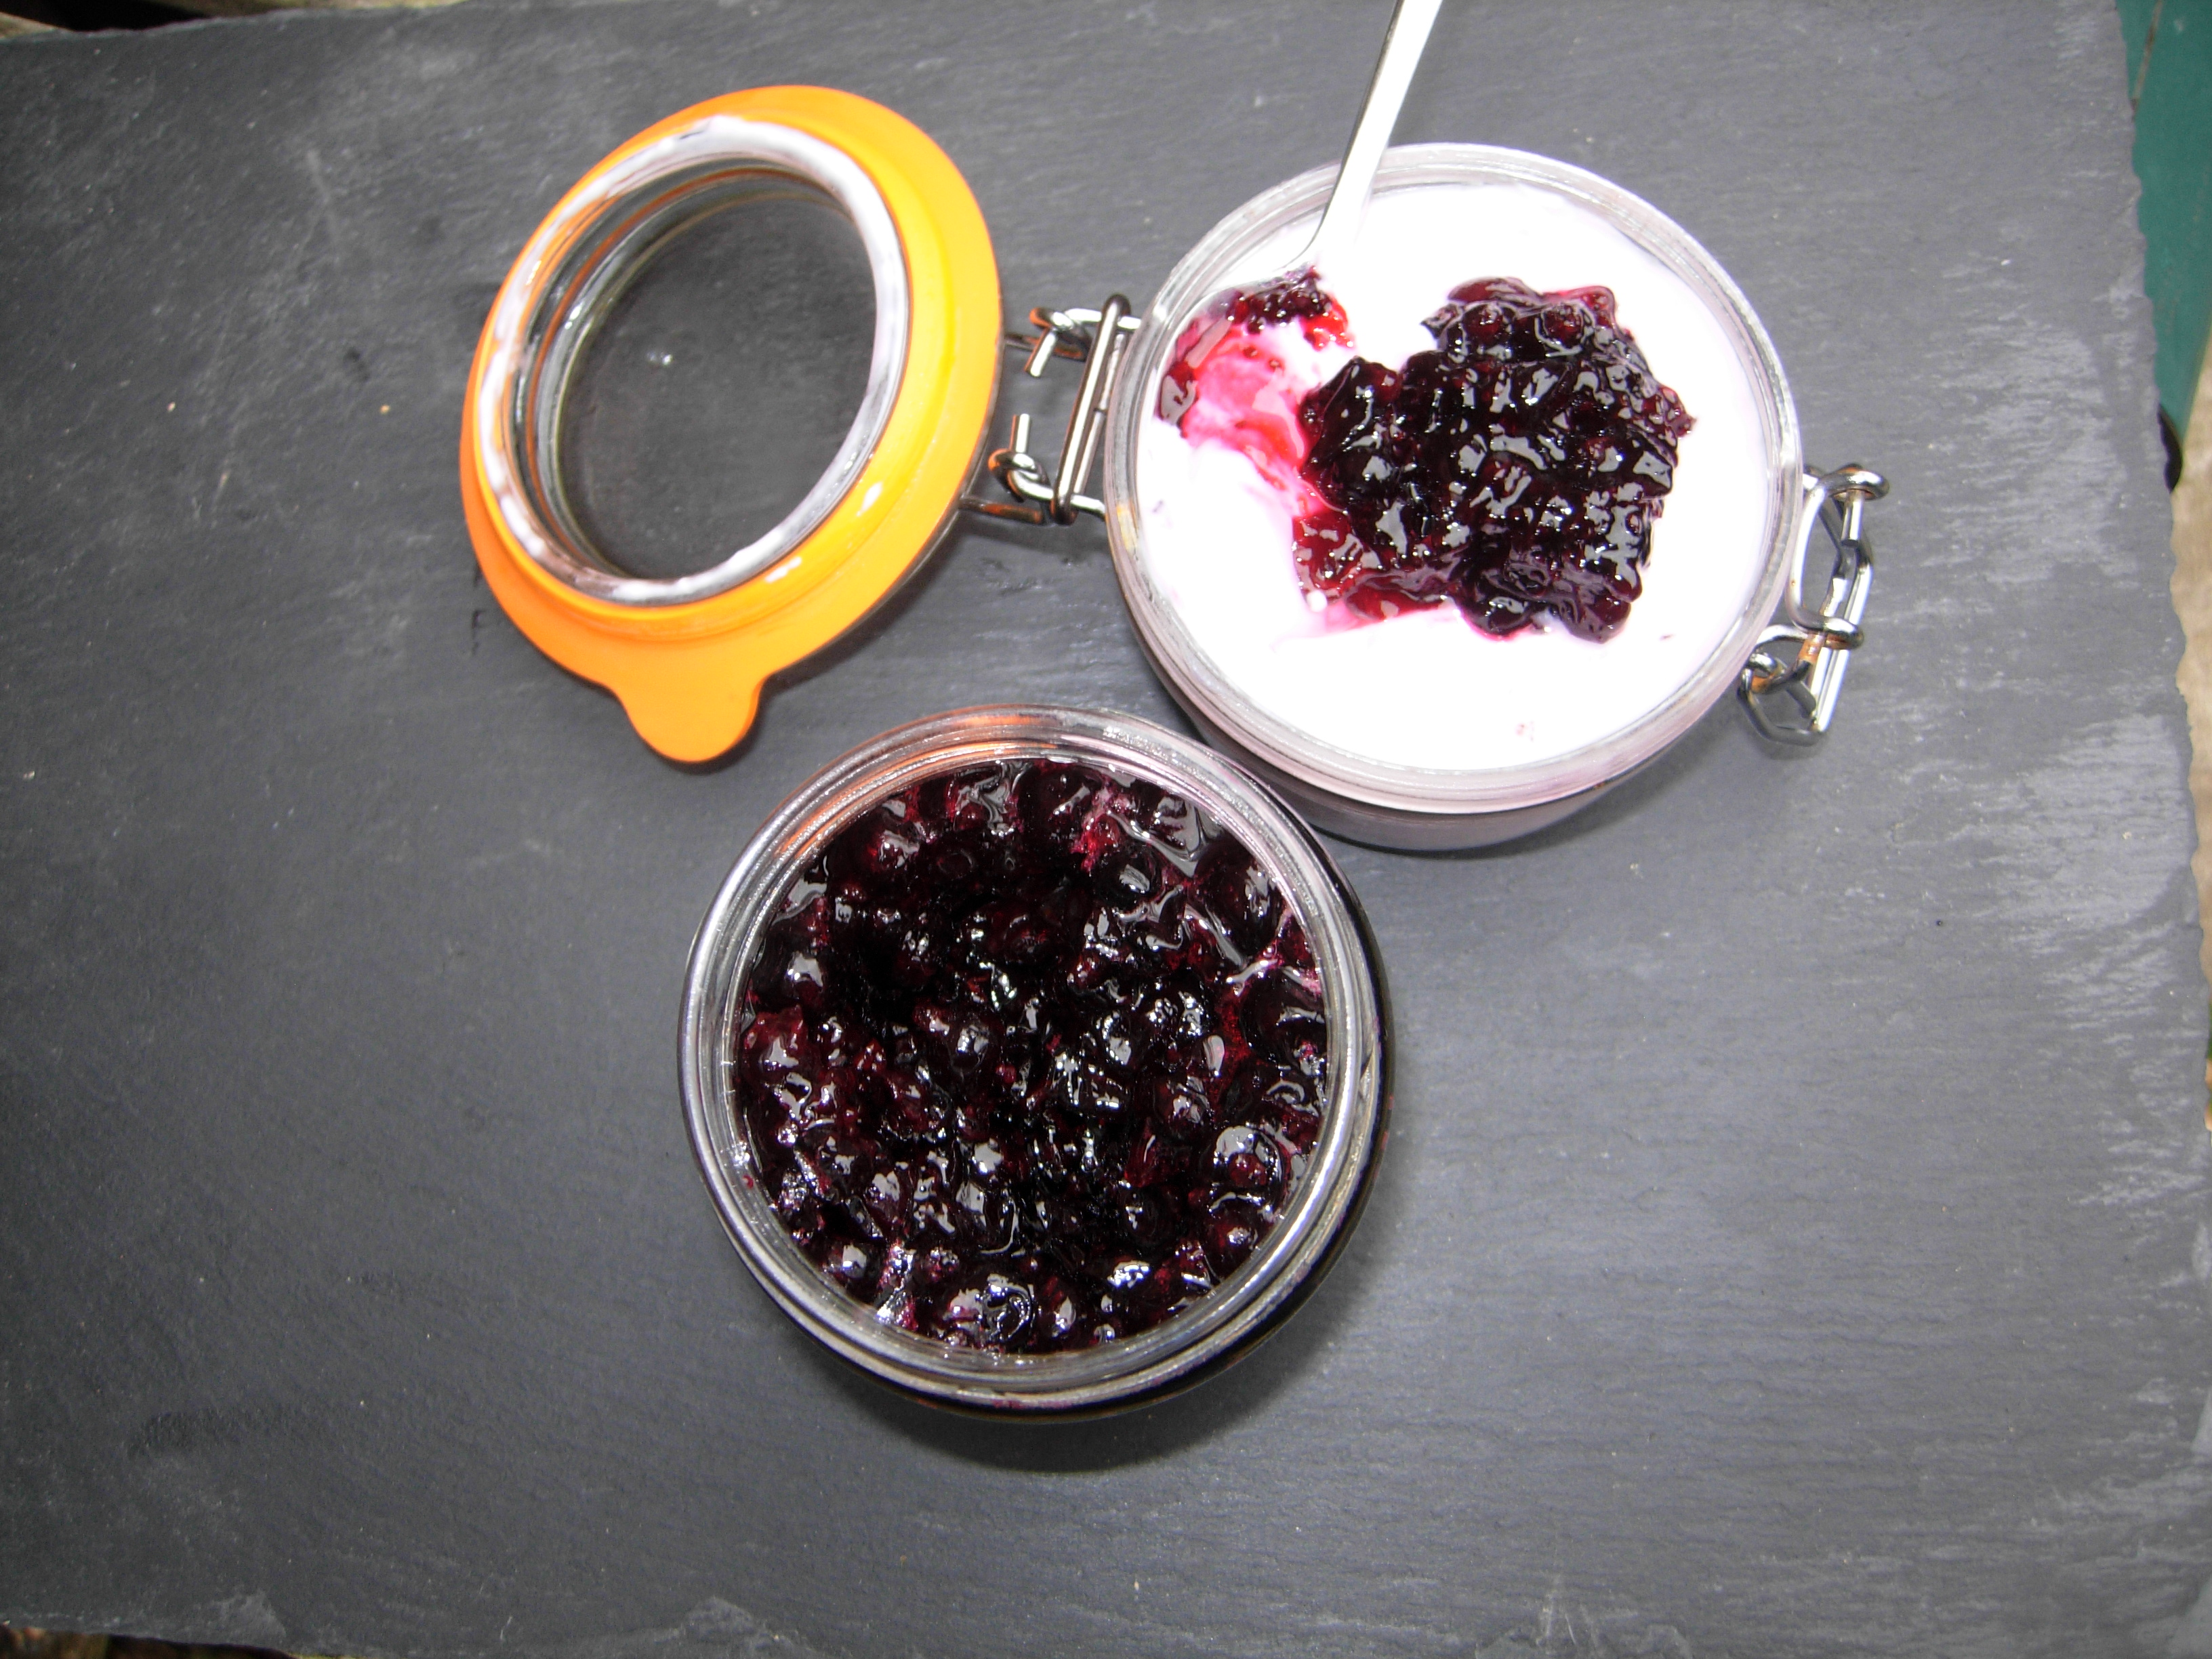 Blackcurrant Jam Recipe Quick And Easy Faraway Visions